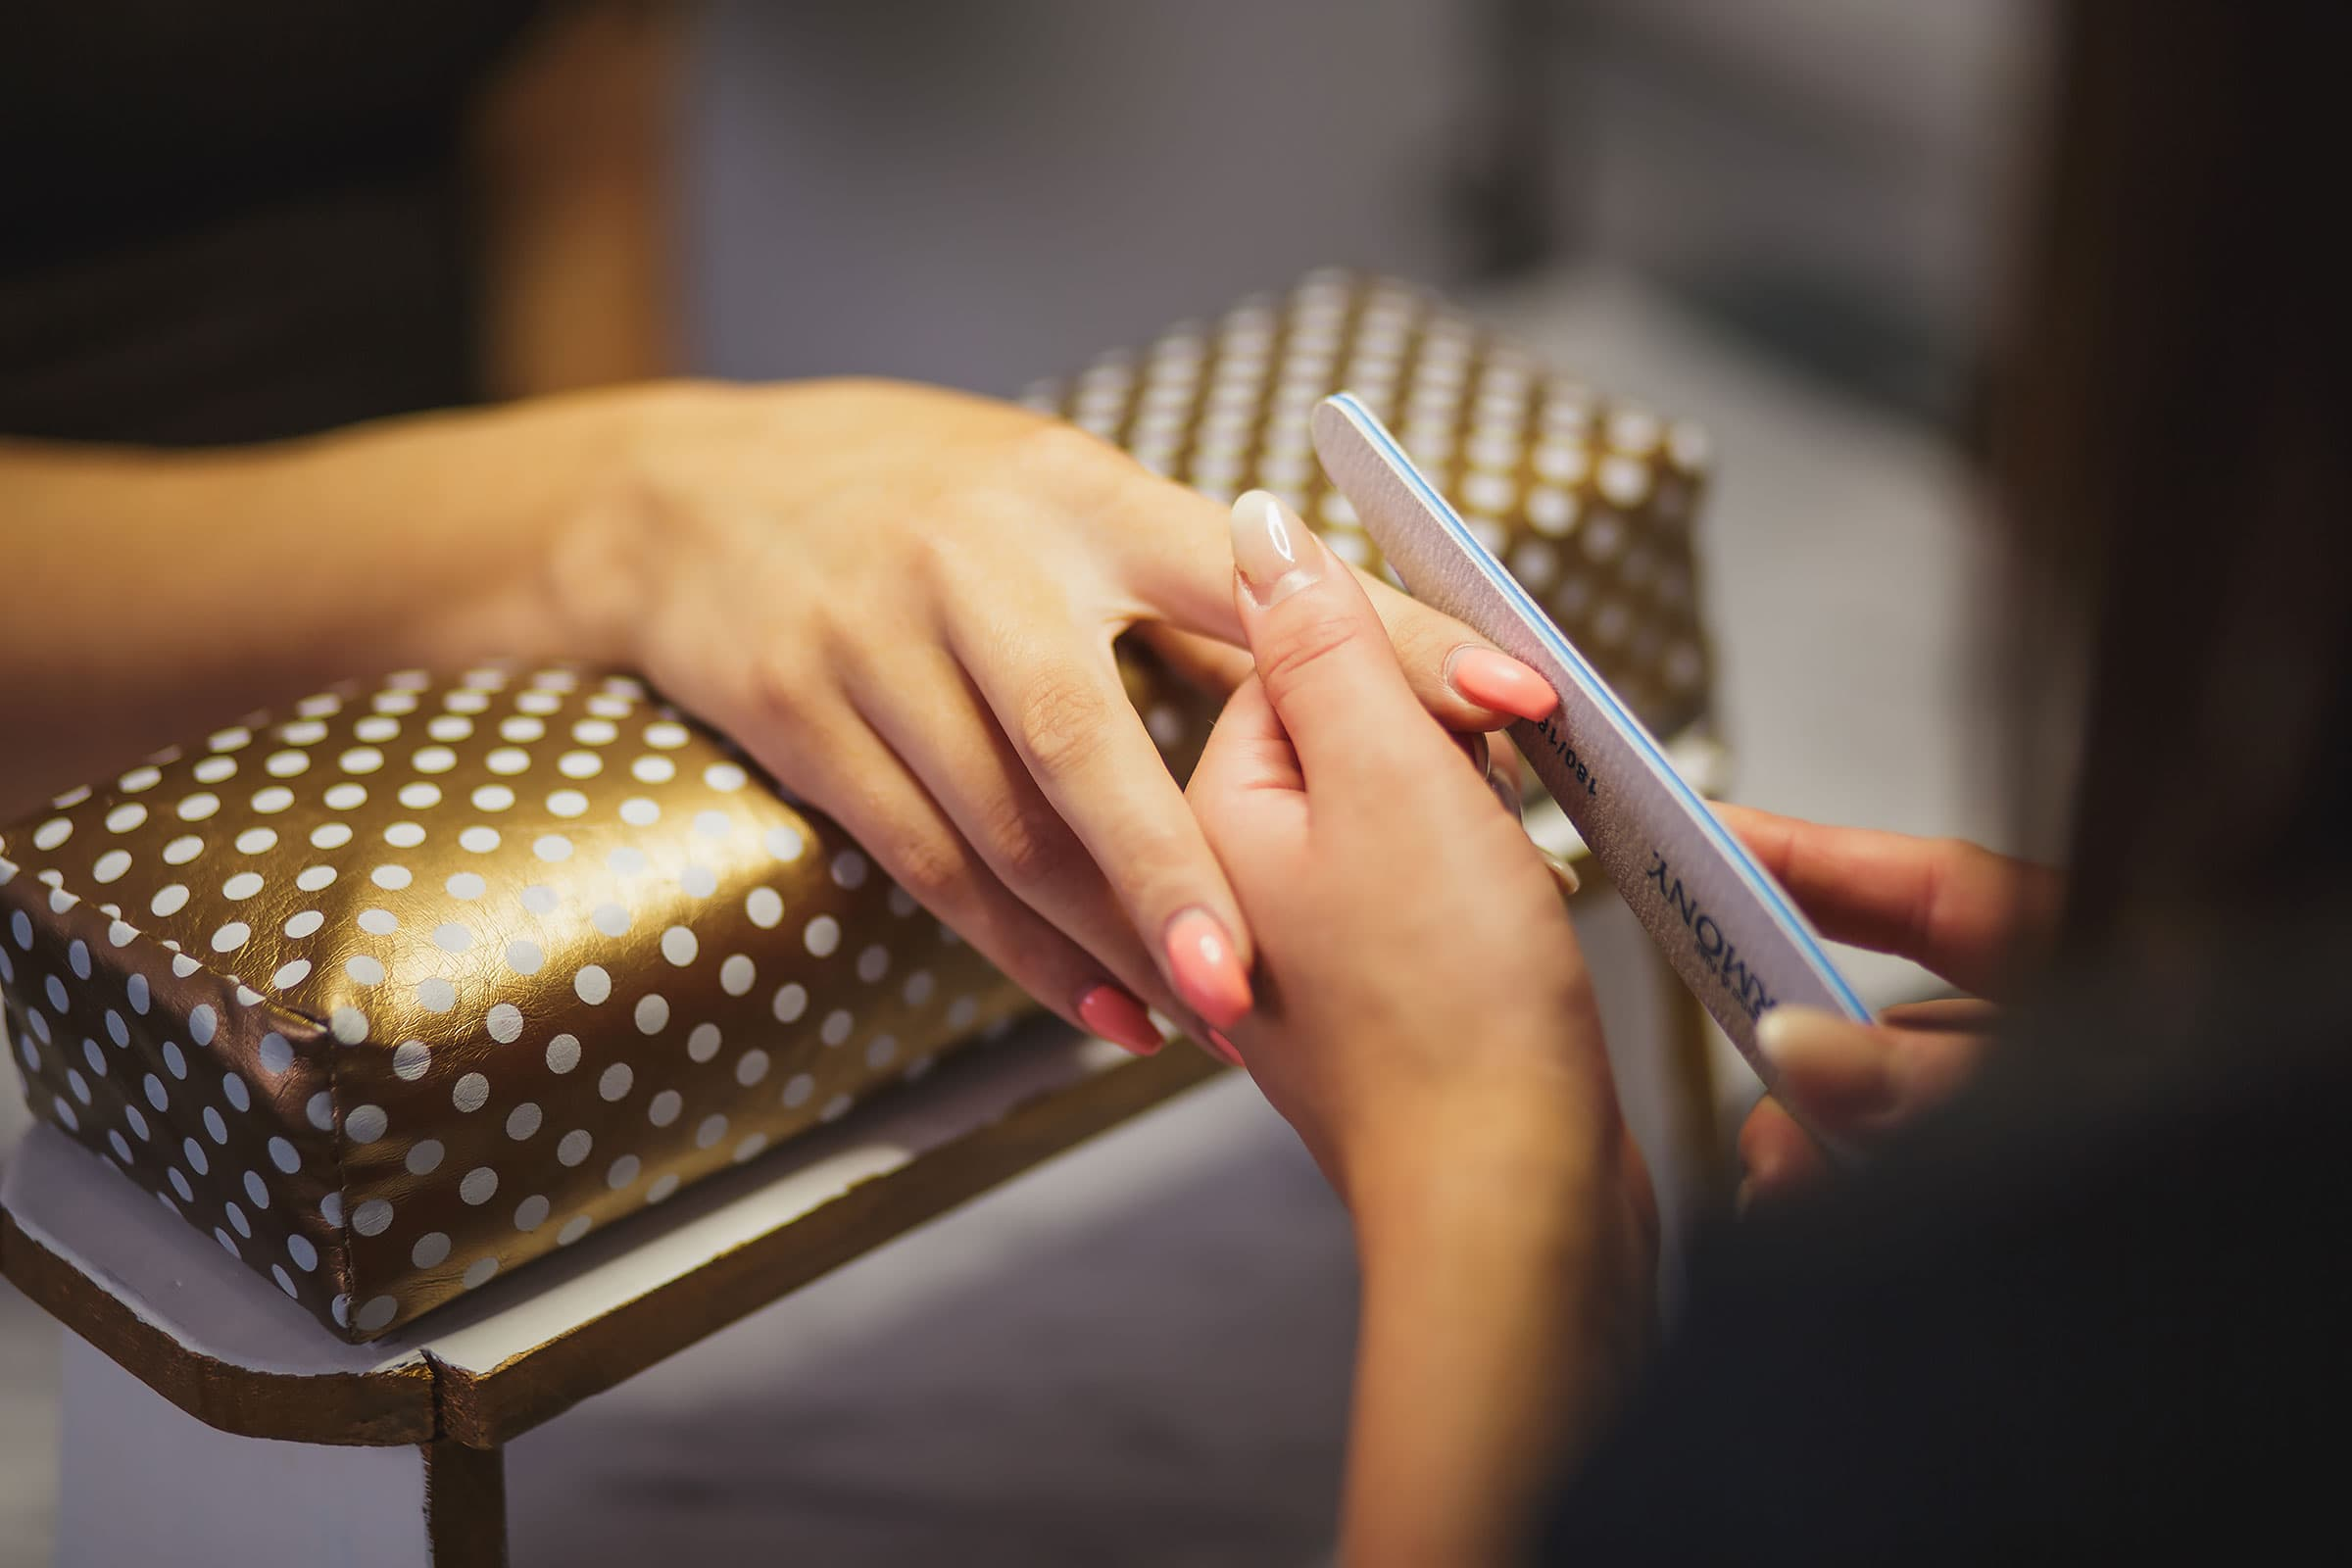 Where to find Stockholm's best nail salons